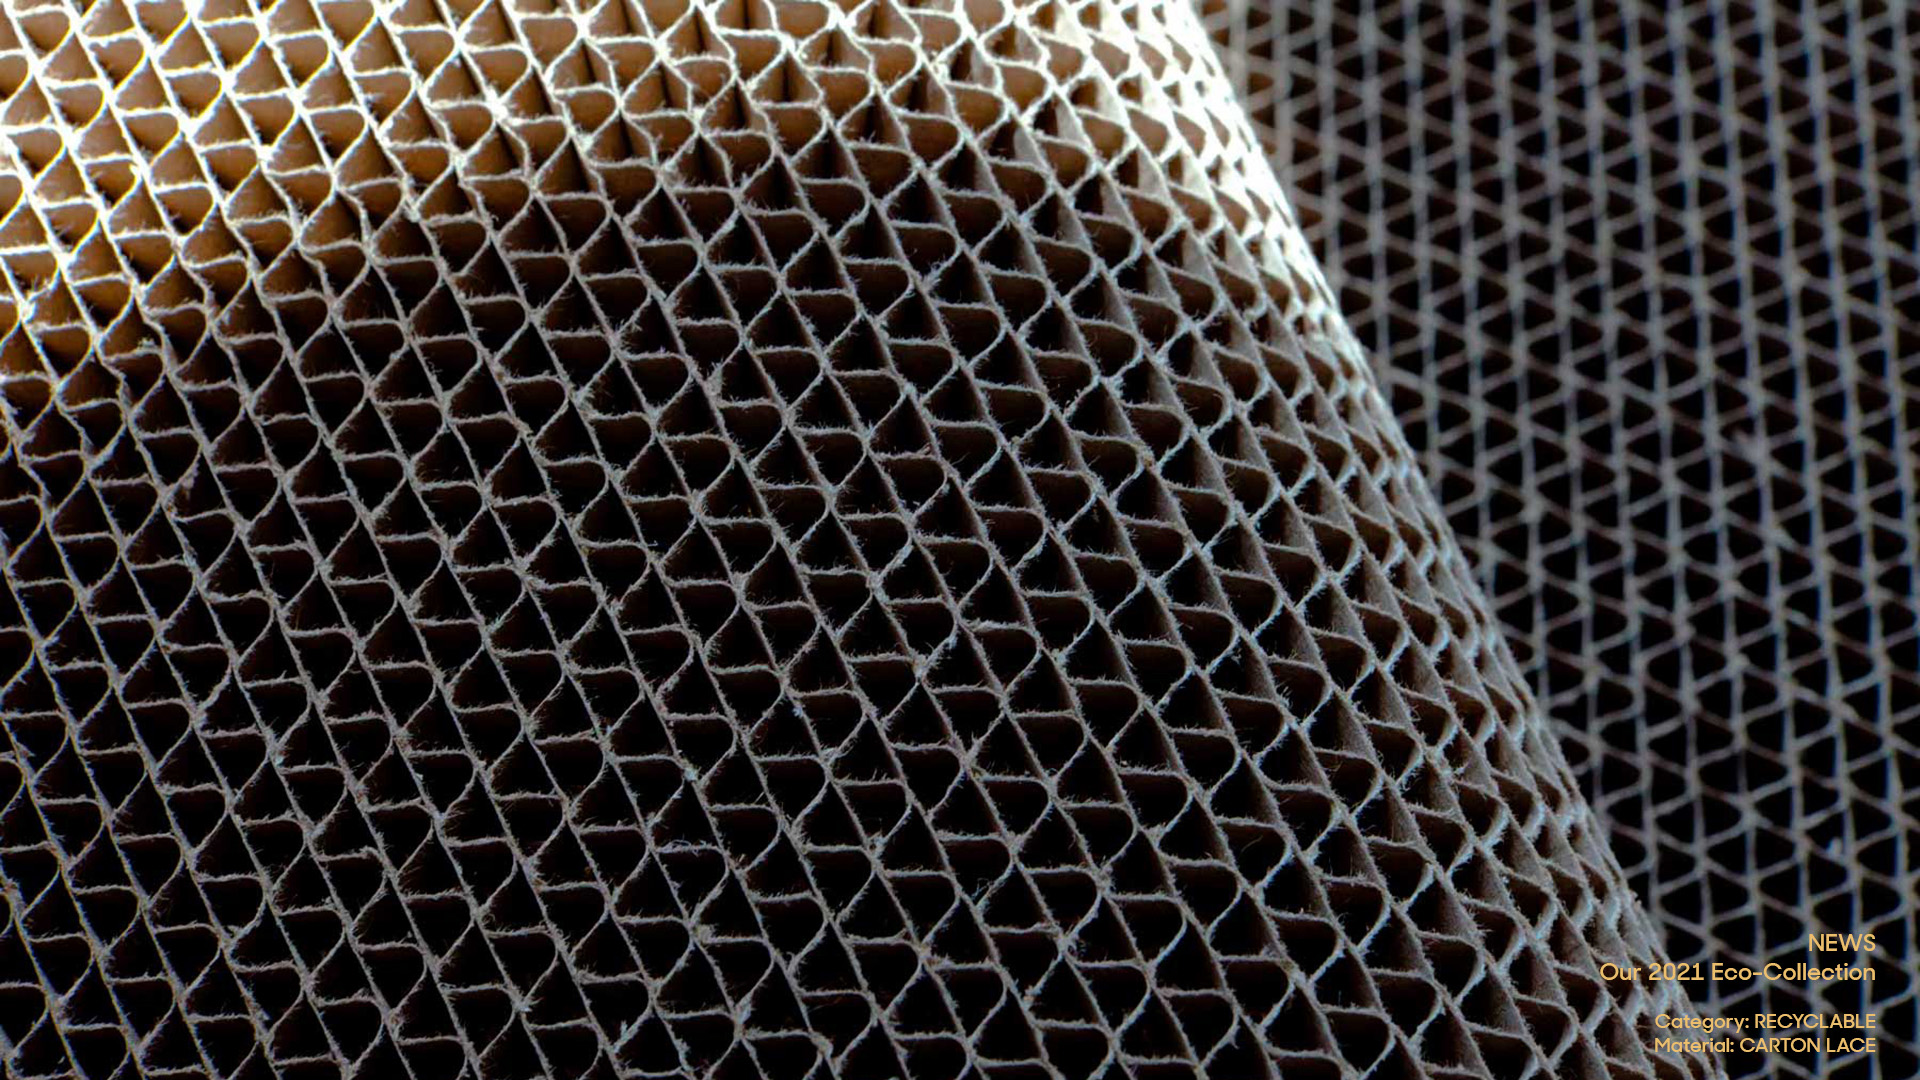 Recyclable_Carton Lace